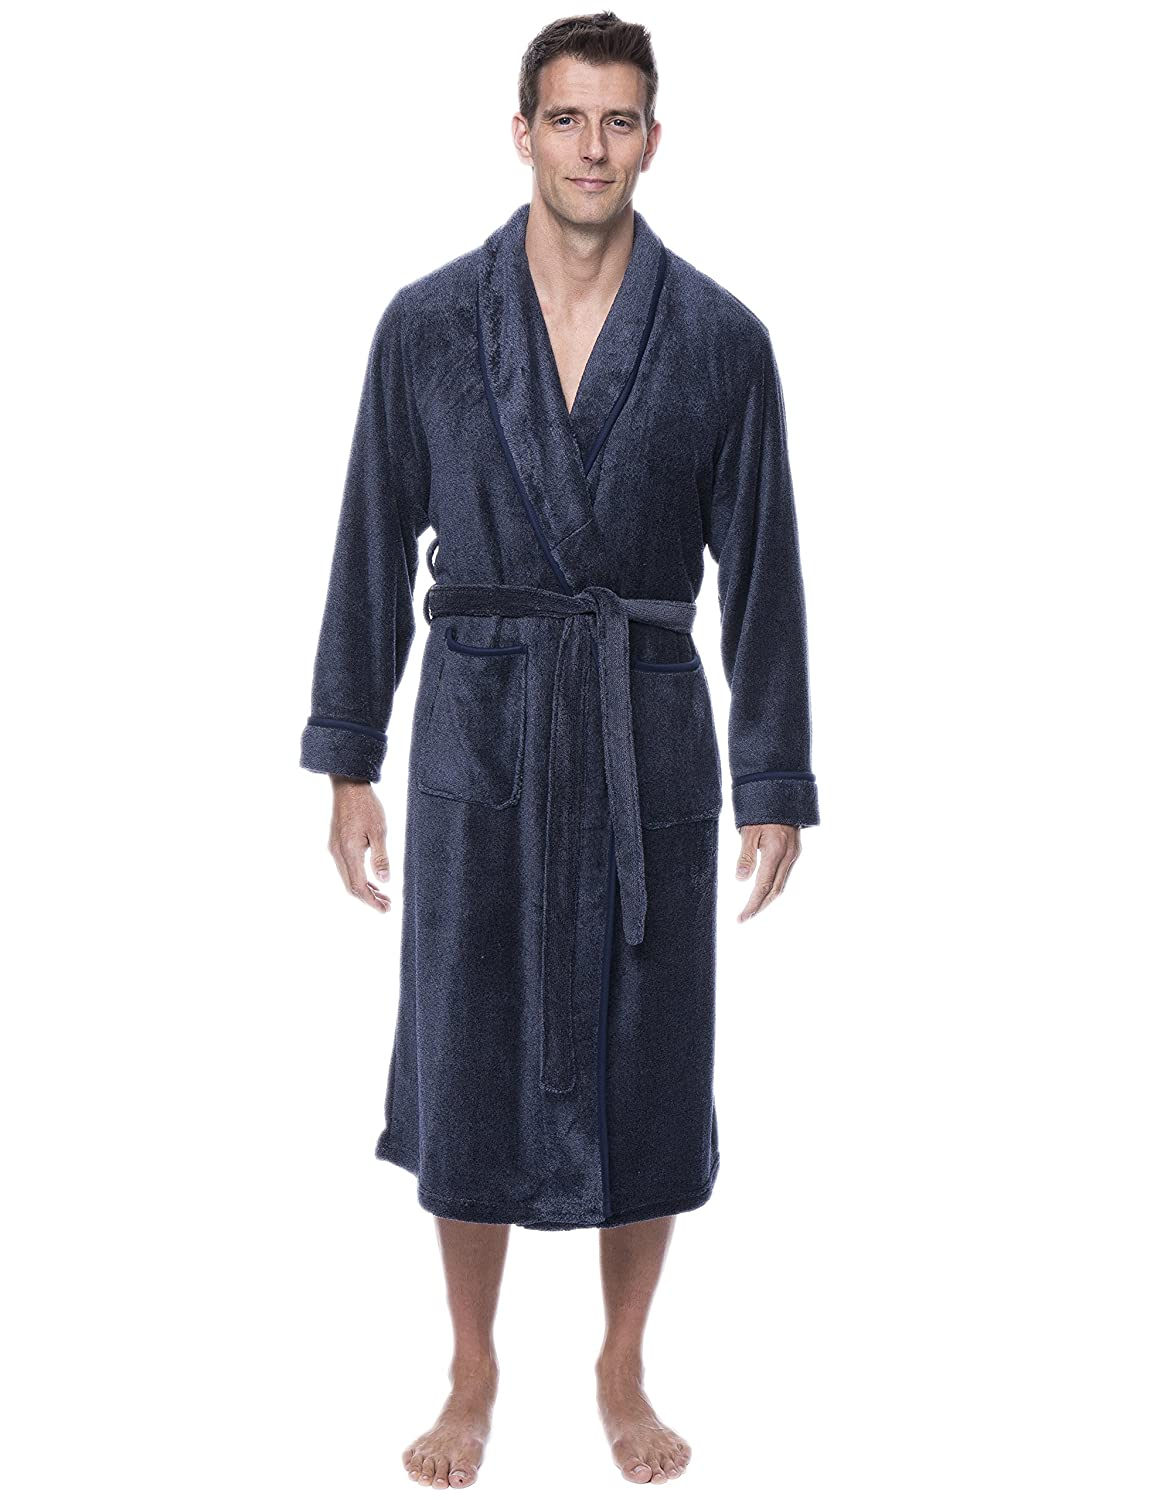 Noble Mount Mens Premium Coral Microfleece Plush Spa/Bath Robe nmt_MNRobe_coralFleece